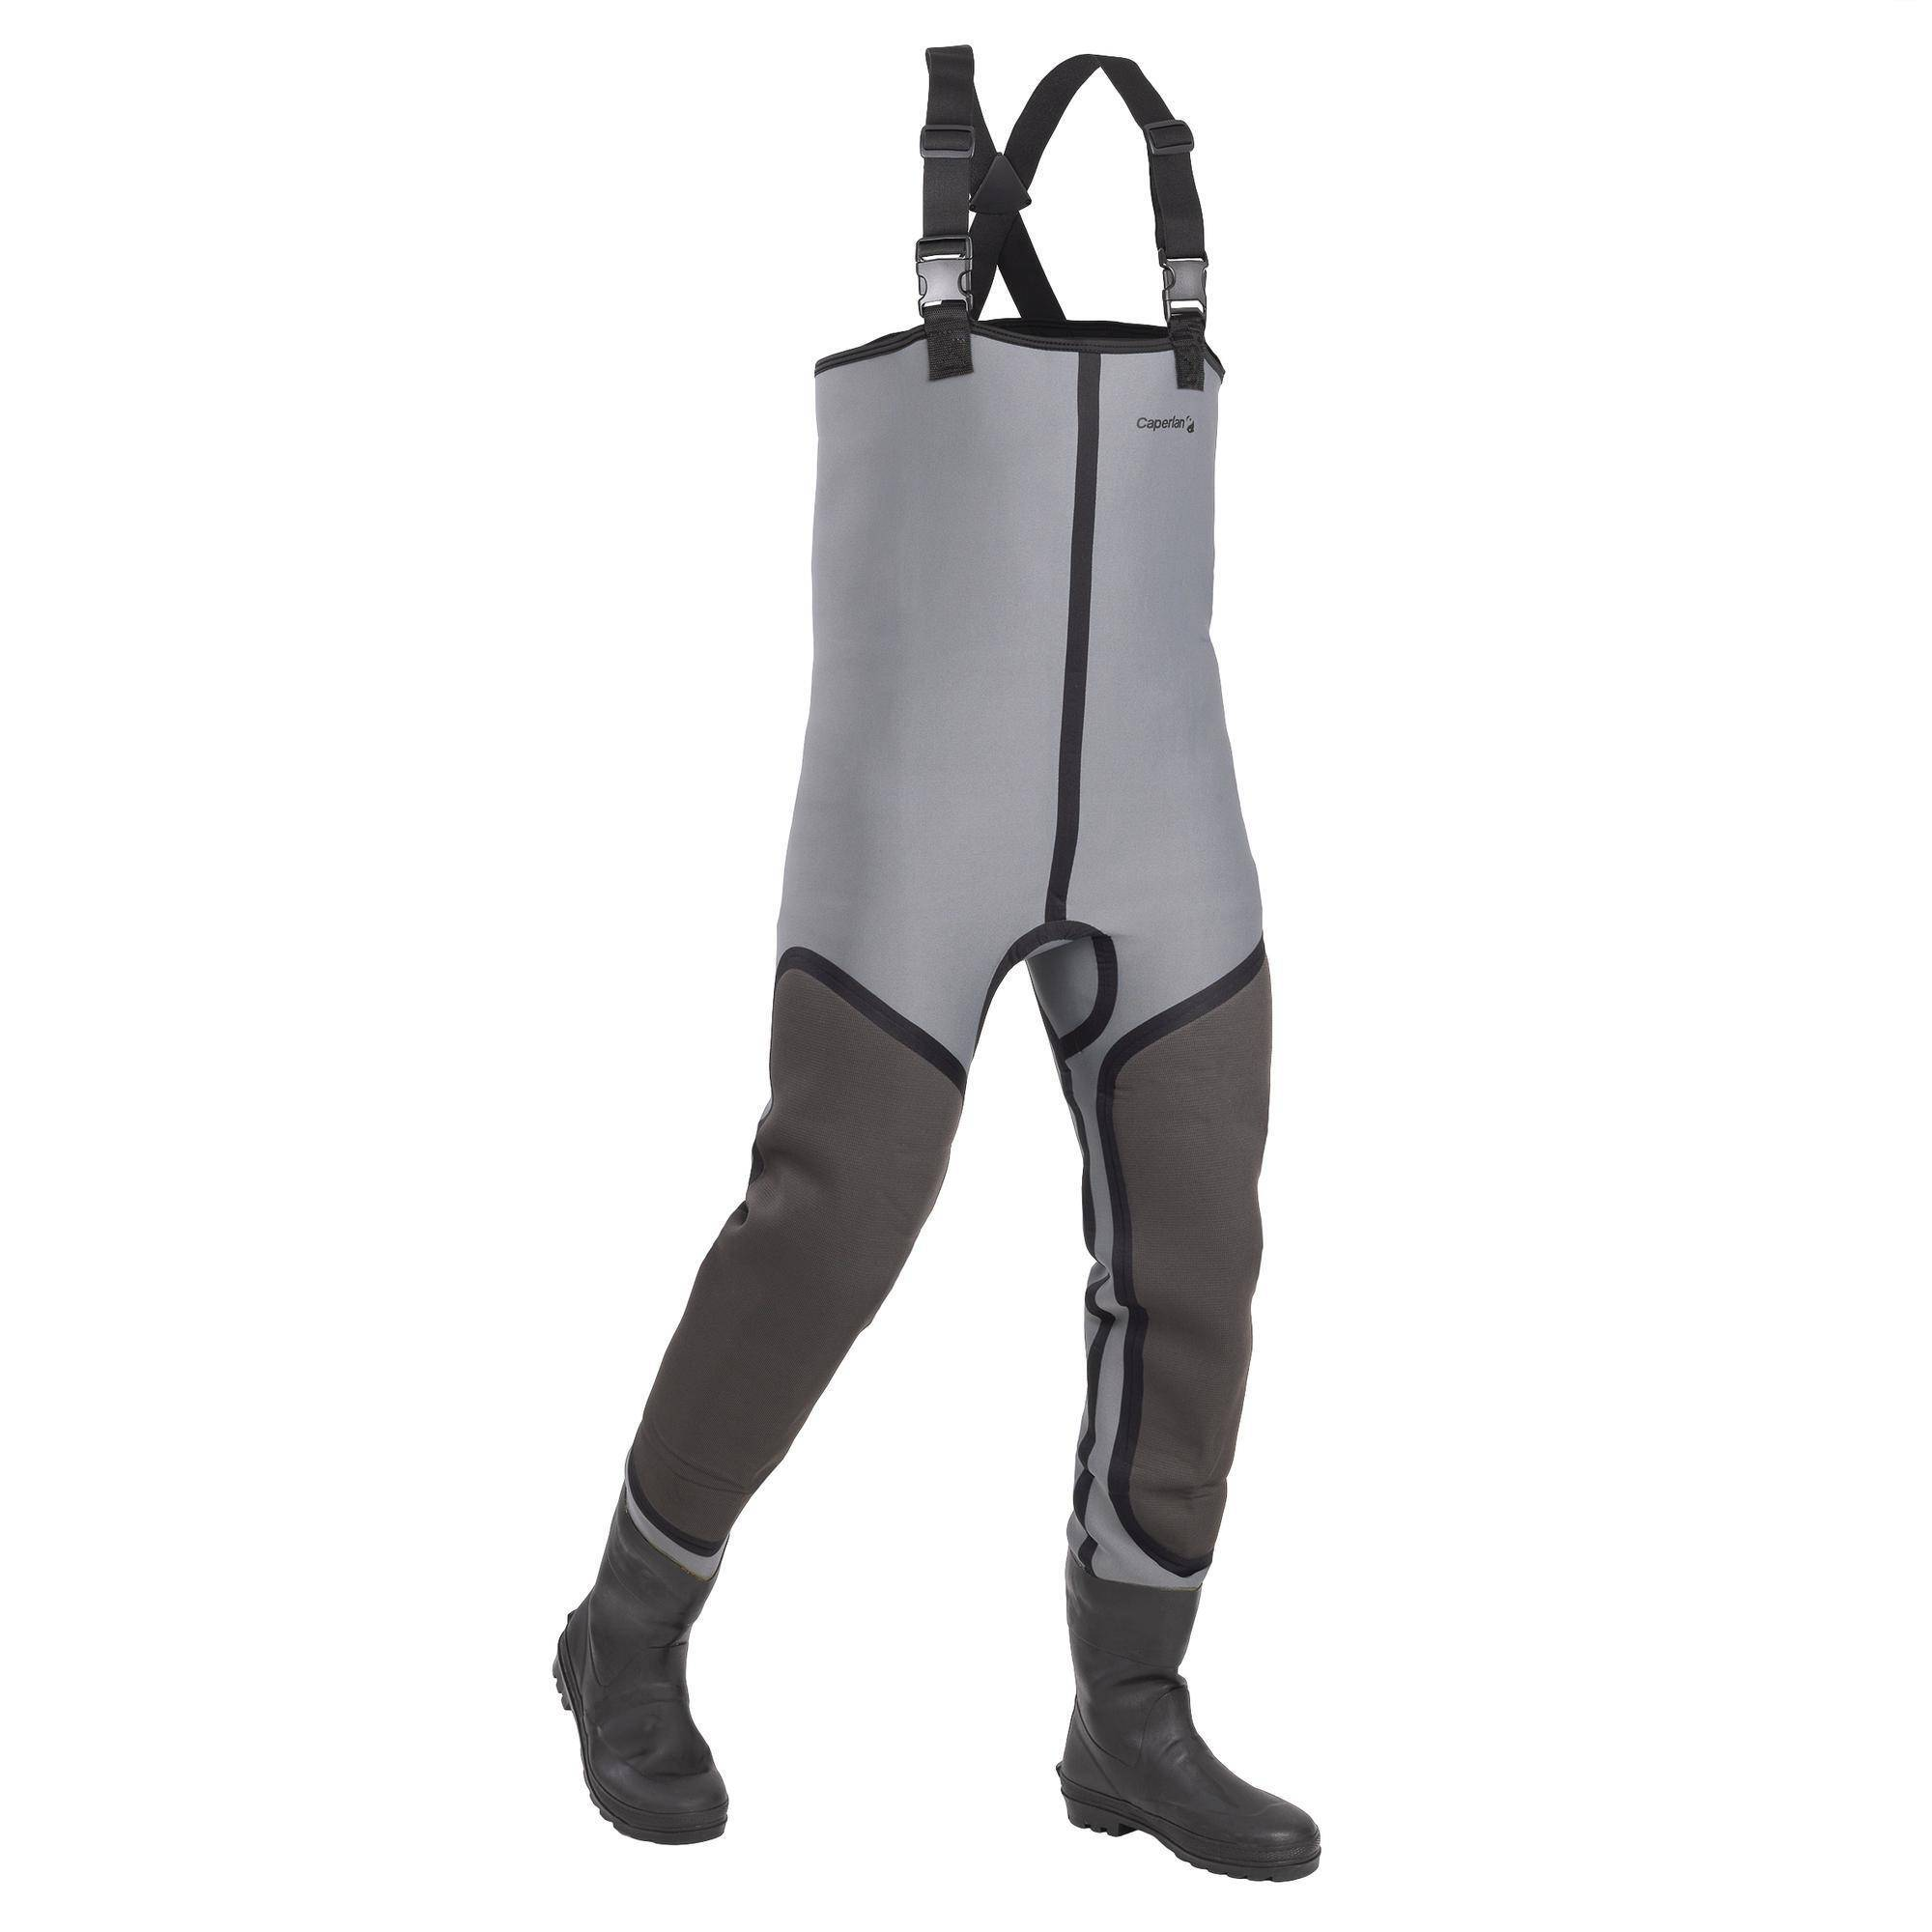 CAPERLAN Waders Pêche WDS-3 Thermo - CAPERLAN - 40/41